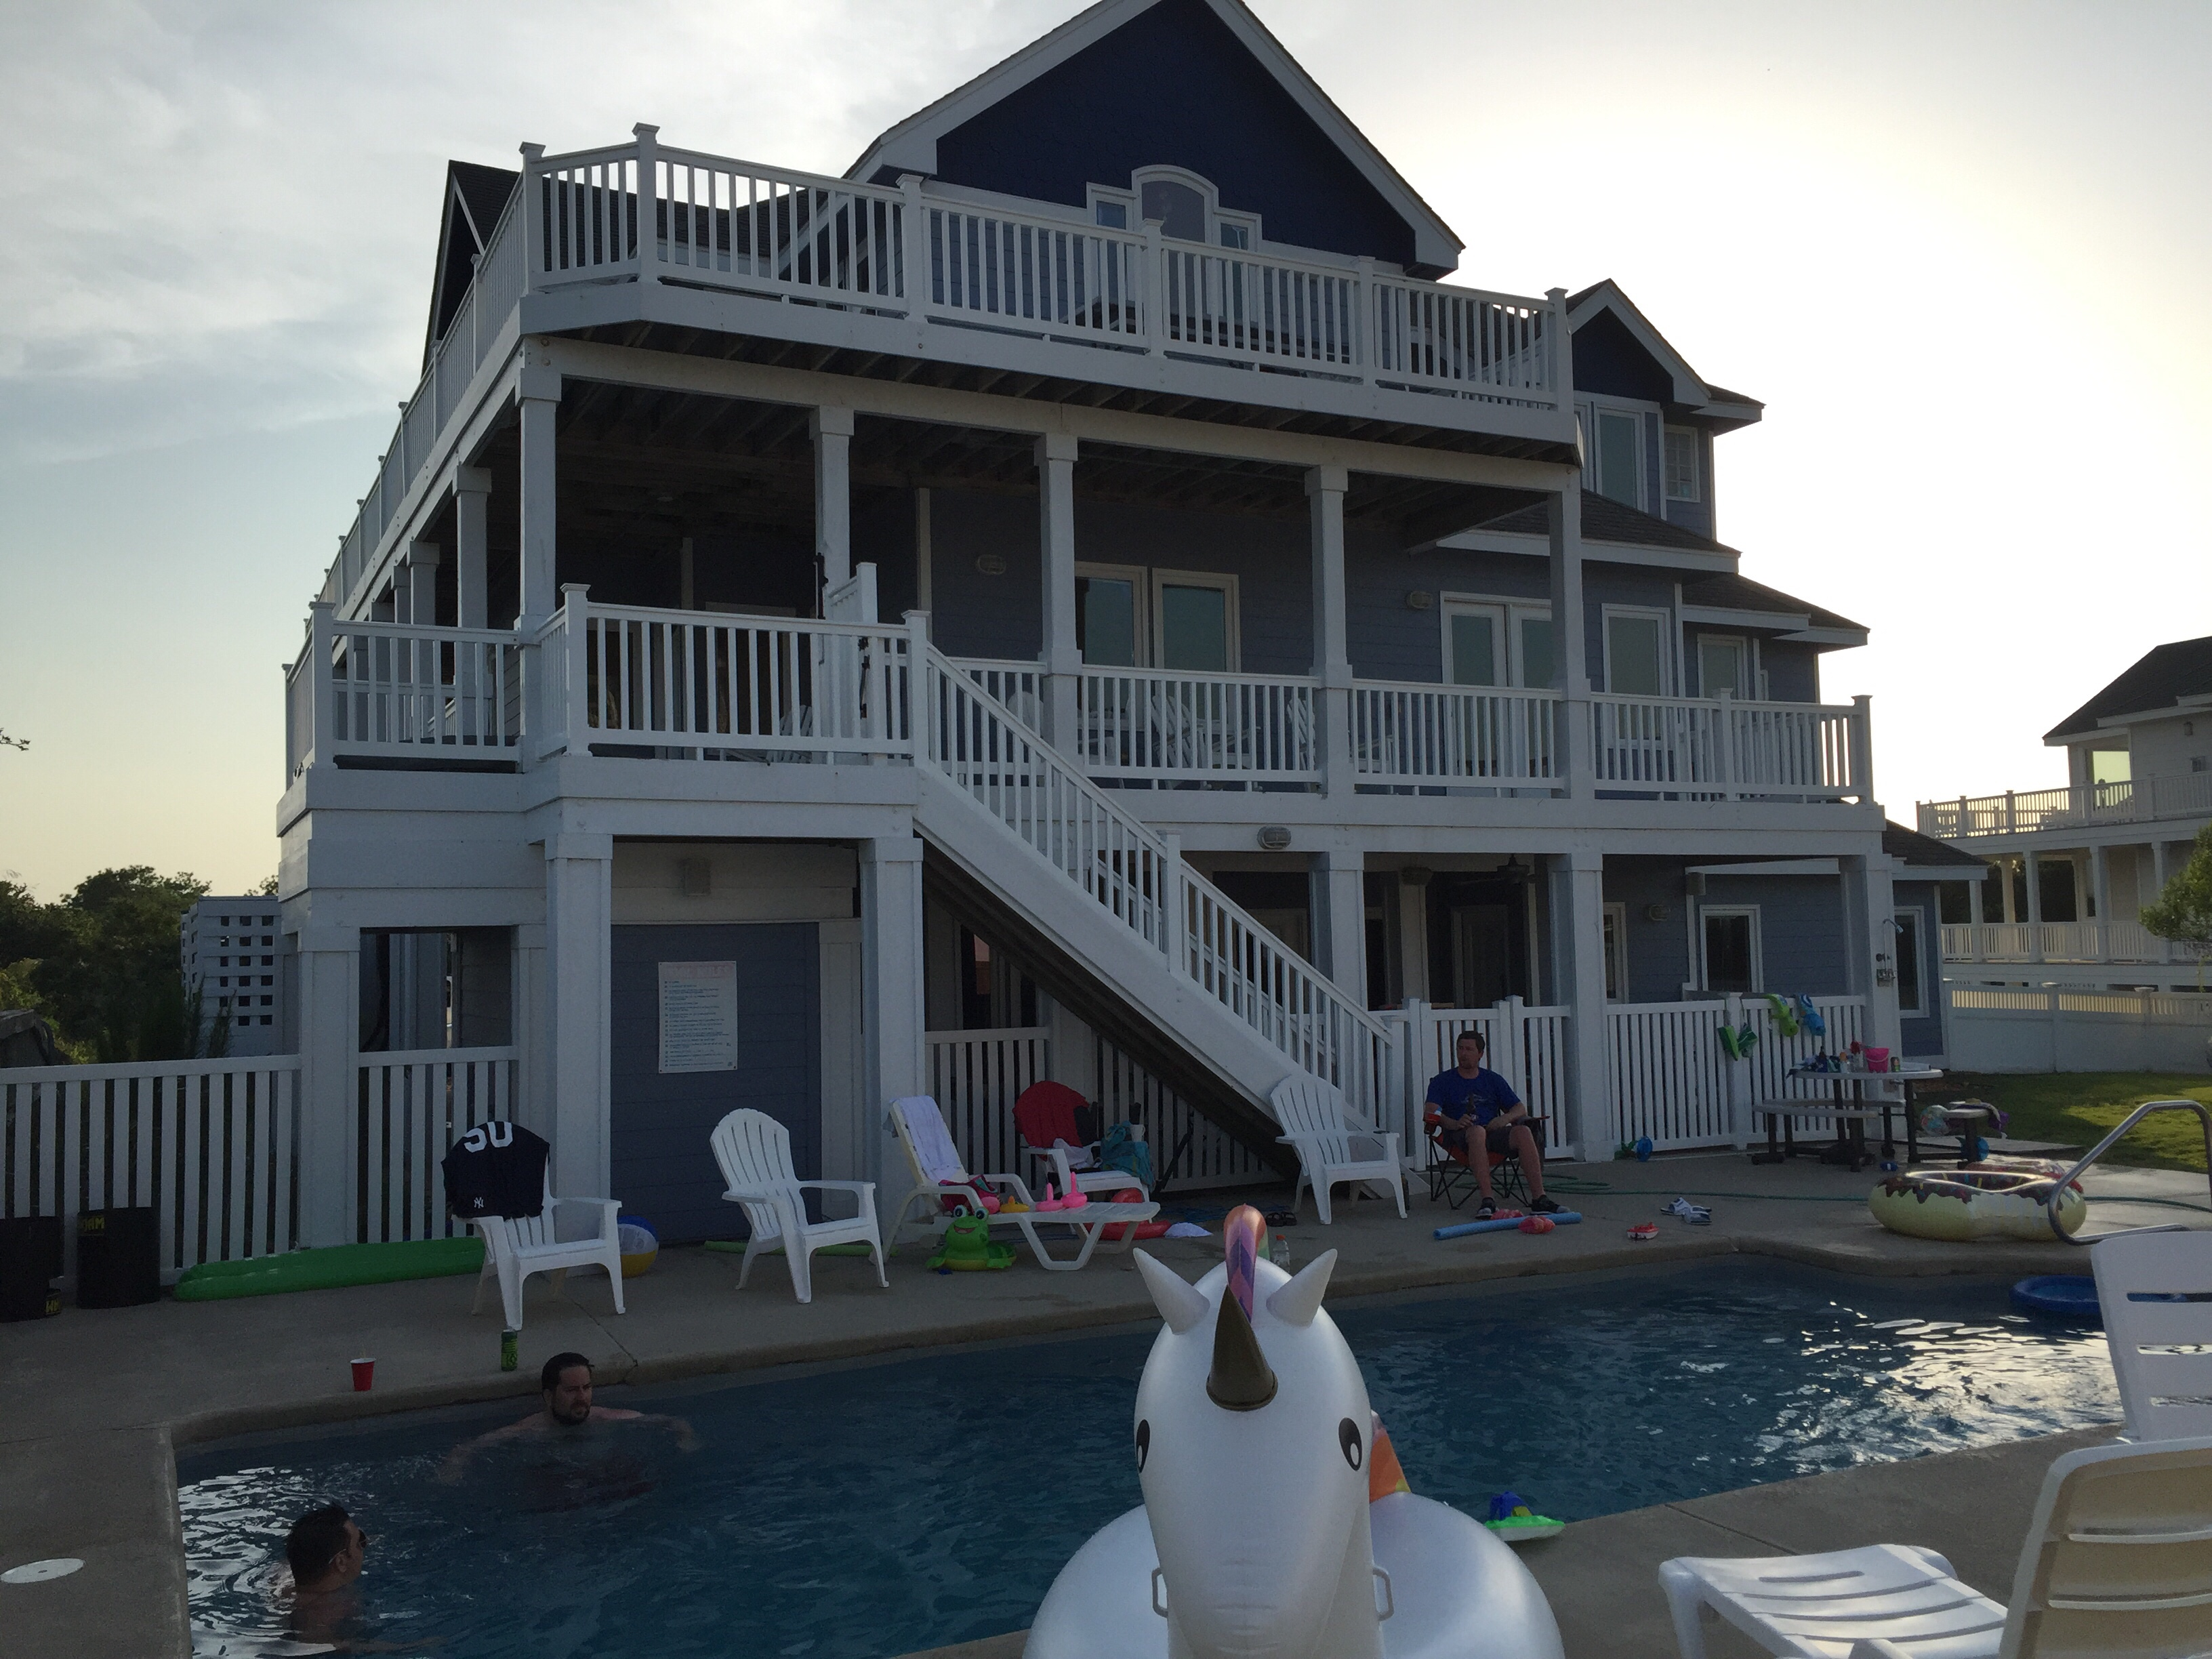 July 2016 Stay - CC230 - A Shore Thing, Russell Burgstahler